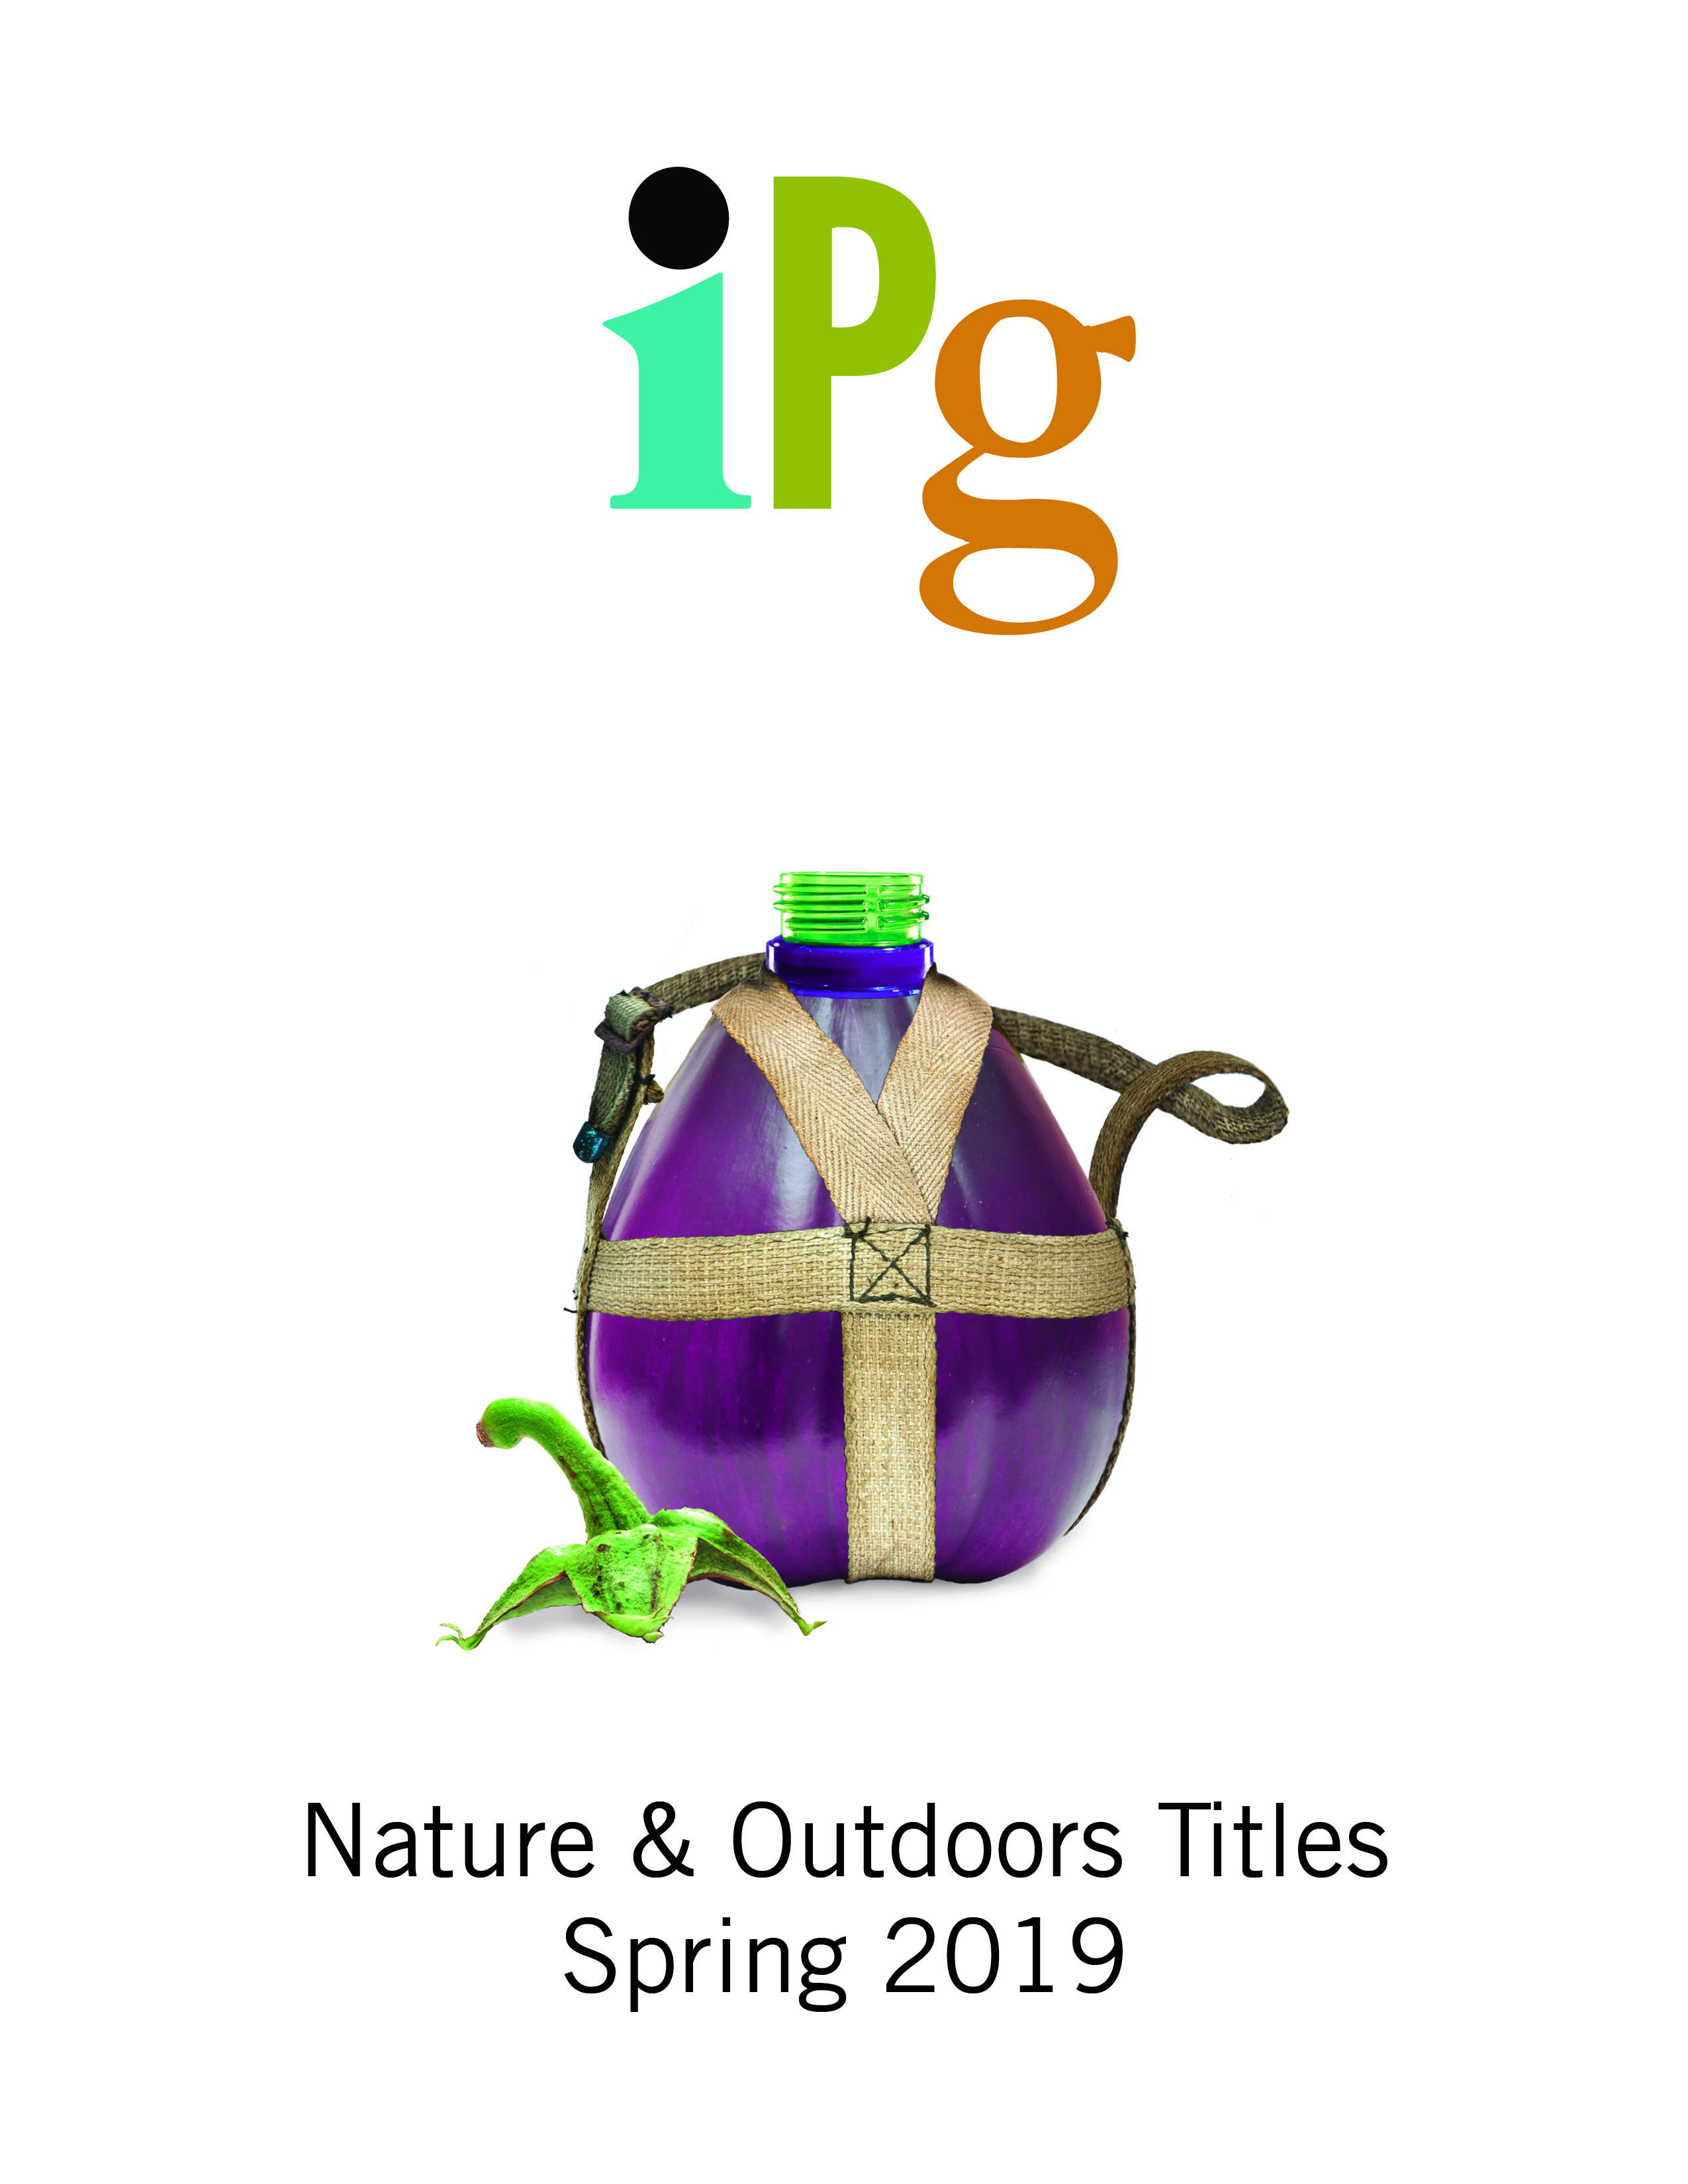 Nature & Outdoors Titles